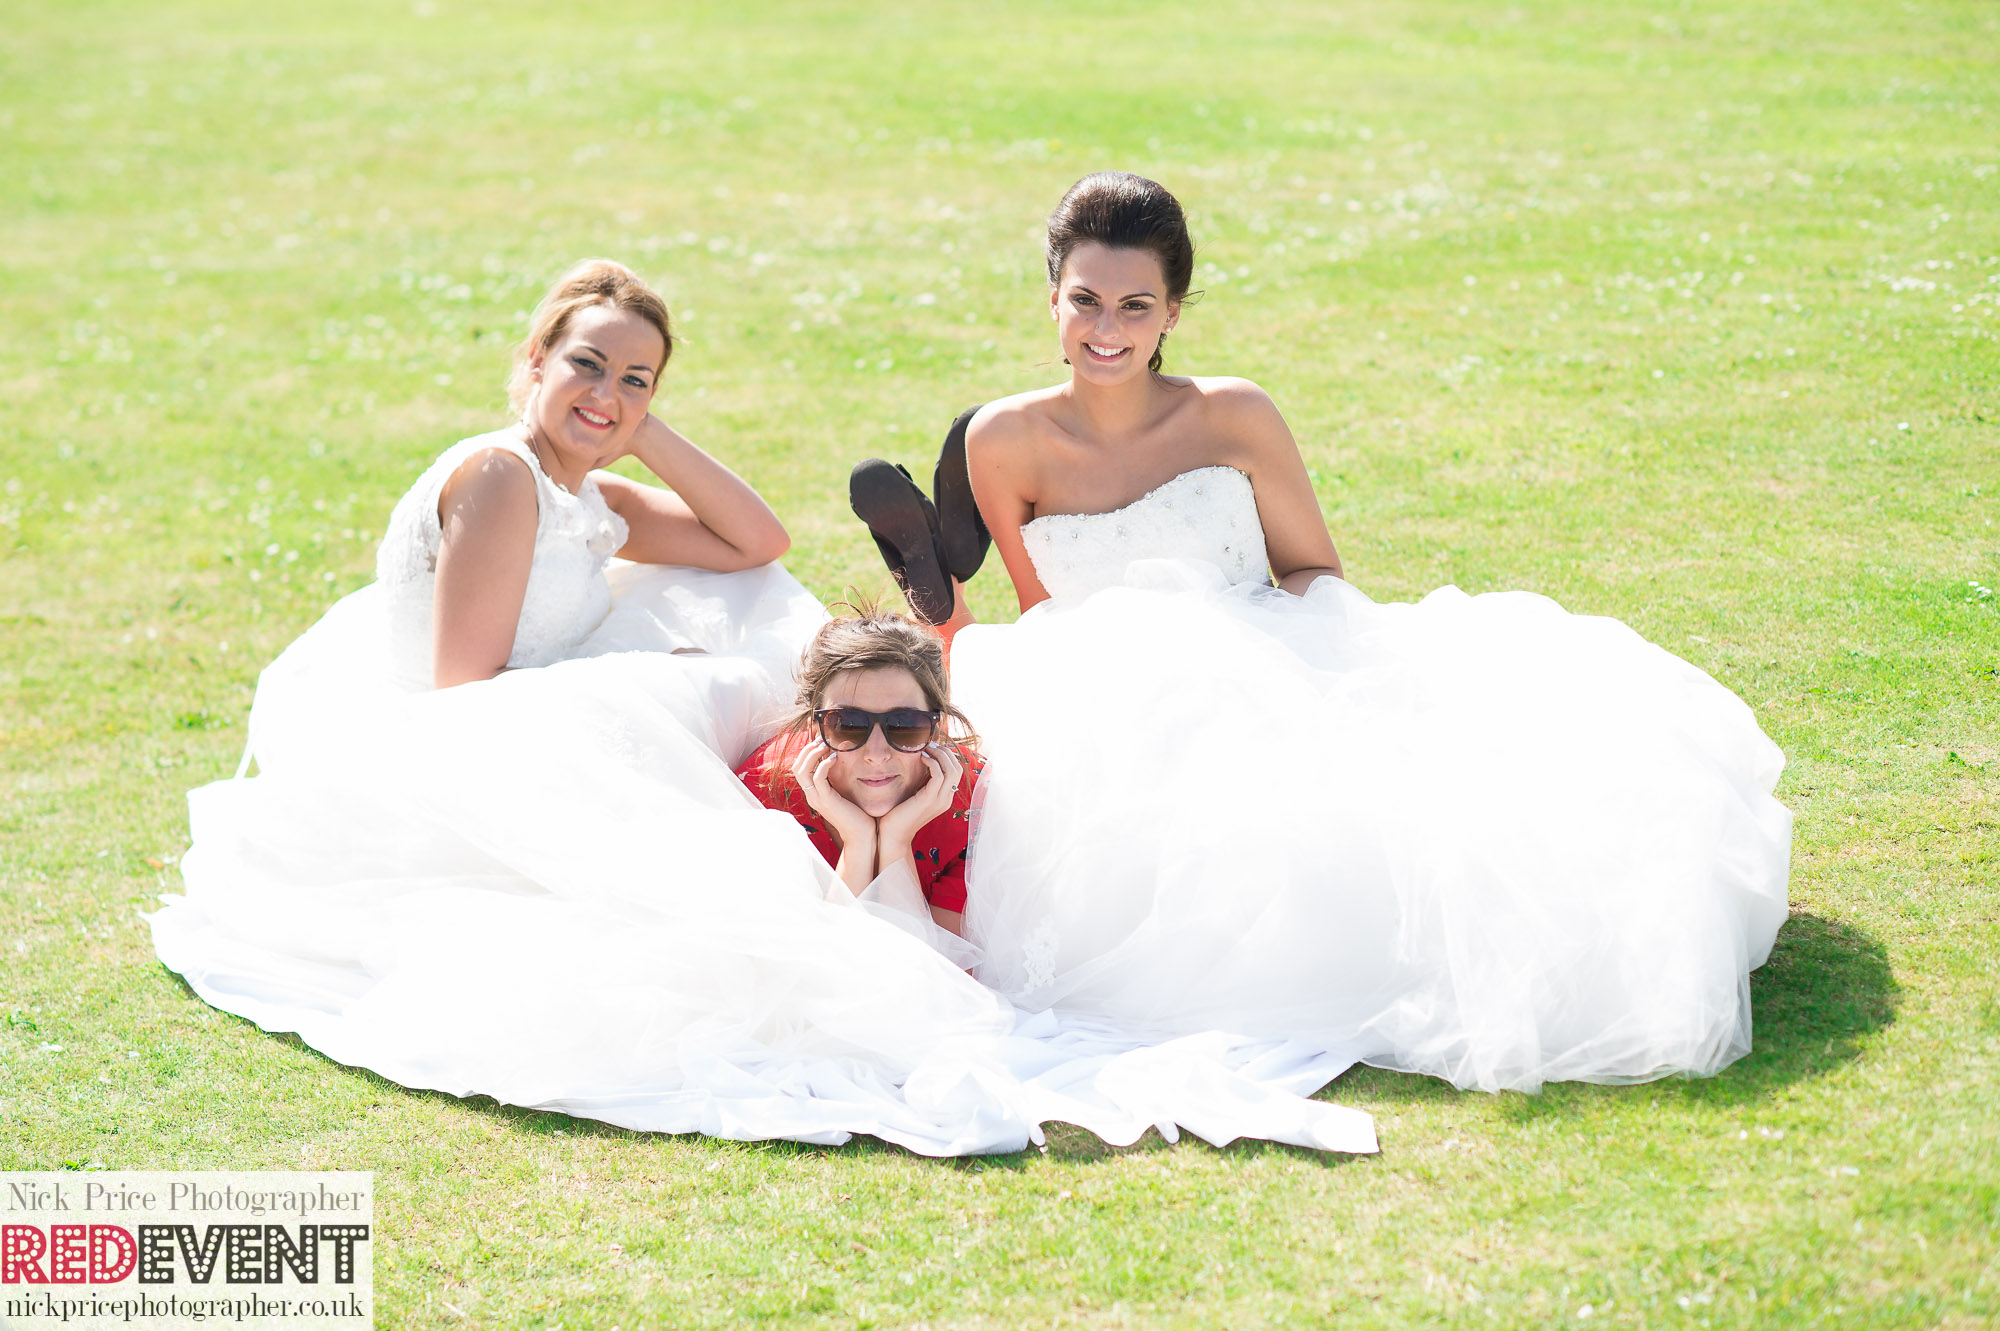 FB TW Leasowe Castle Wedding Fayre, Wirral. Sunday 22nd June Nikke Veronica & Hayleigh Photoshoot RED EVENT-398